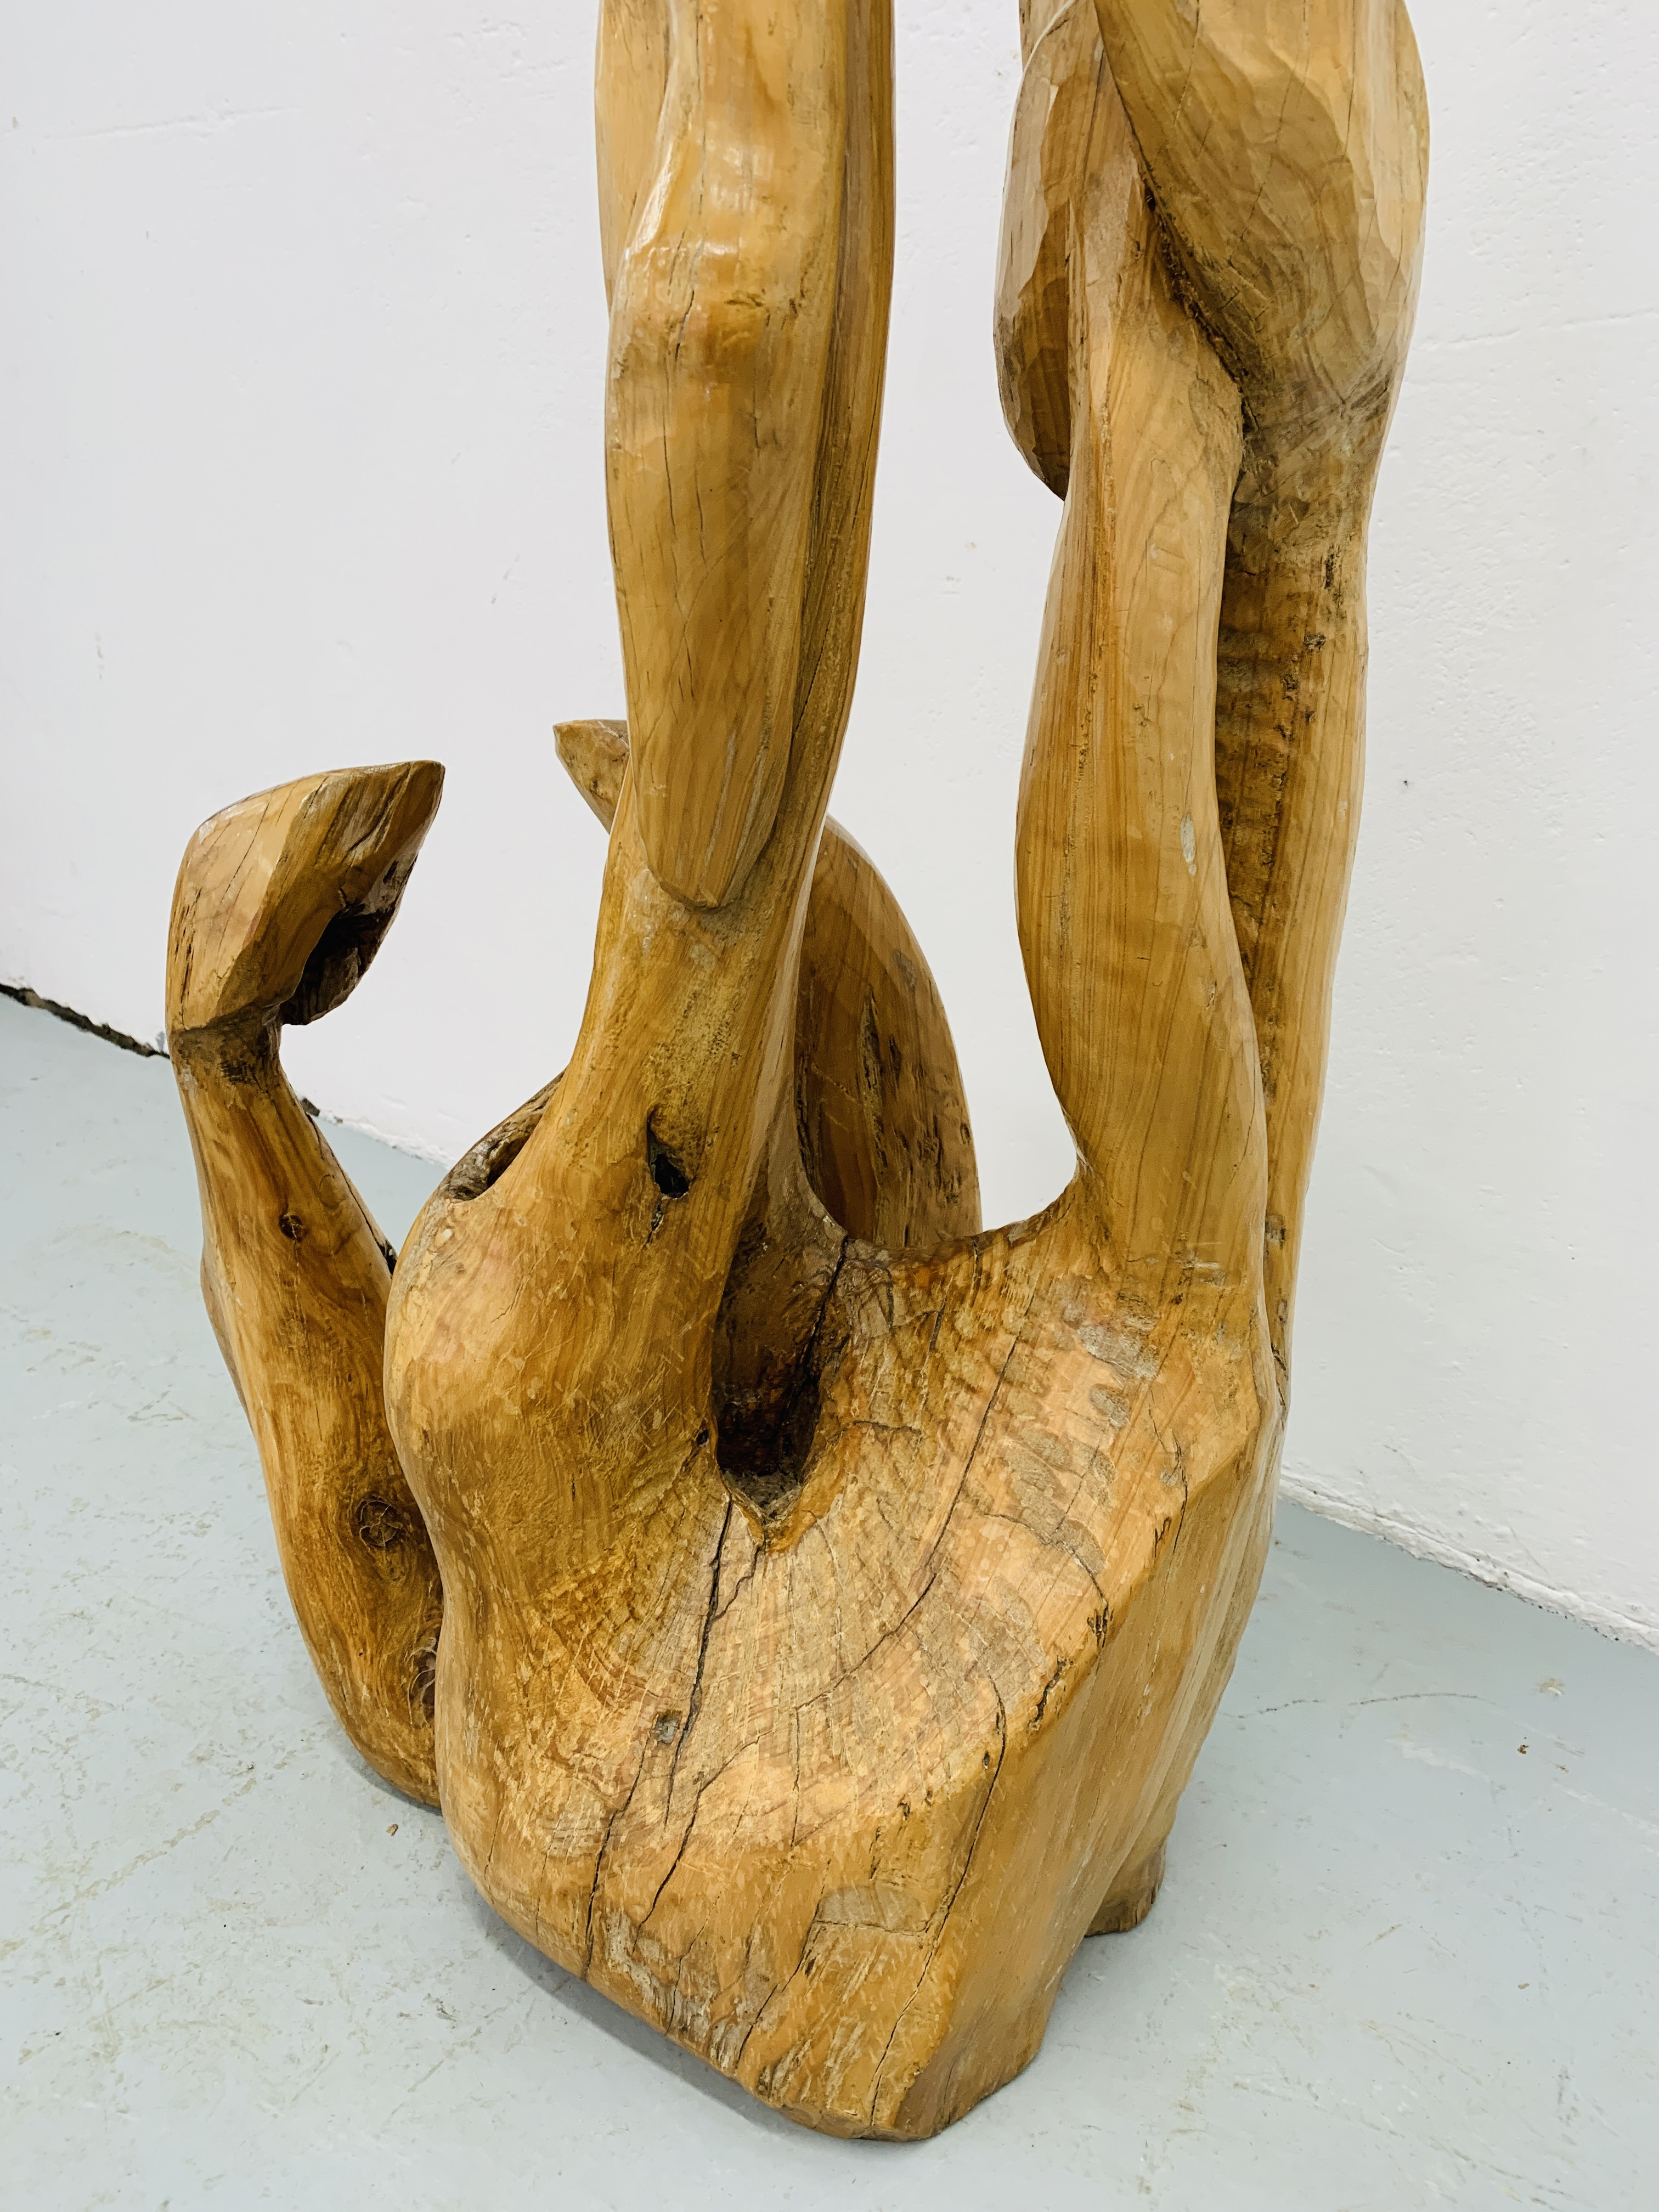 """A HARDWOOD ABSTRACT SCULPTURE """"FAMILY"""" BY P.T. - Image 5 of 9"""